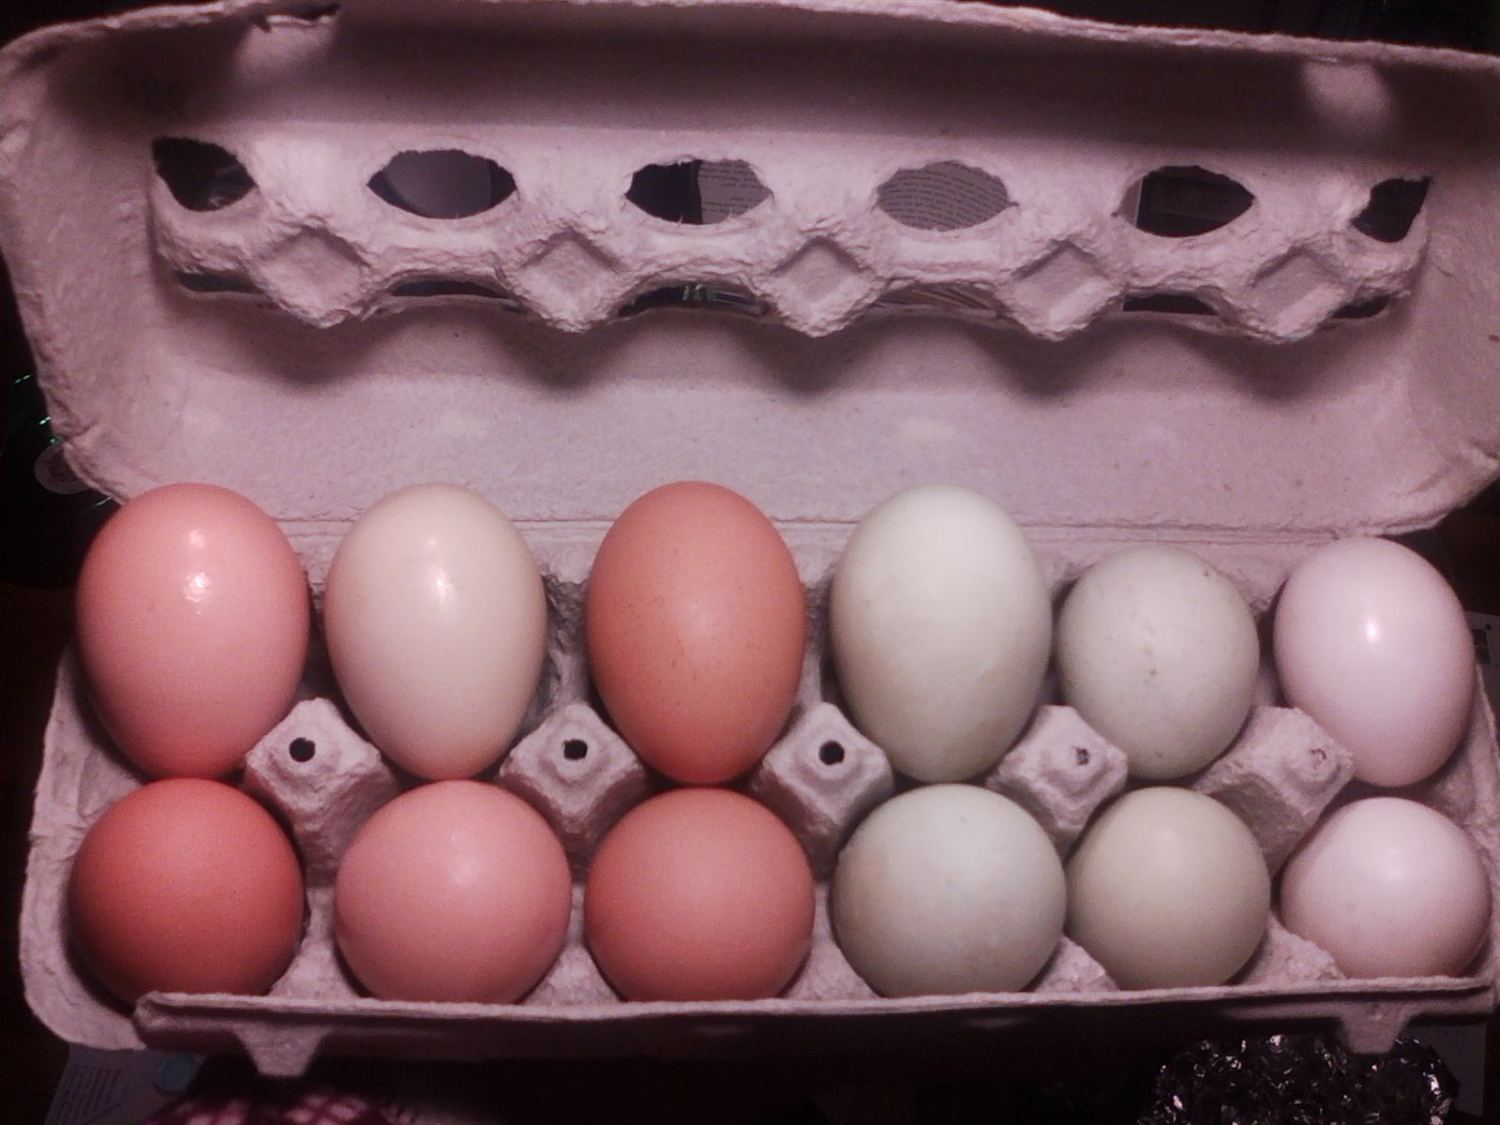 The six on the right are duck eggs.  Left side is Cinnamon, the round ones are from Little Pea (is that why they are round?) and the white ones are from Thunder.  The six on the left are hen eggs.